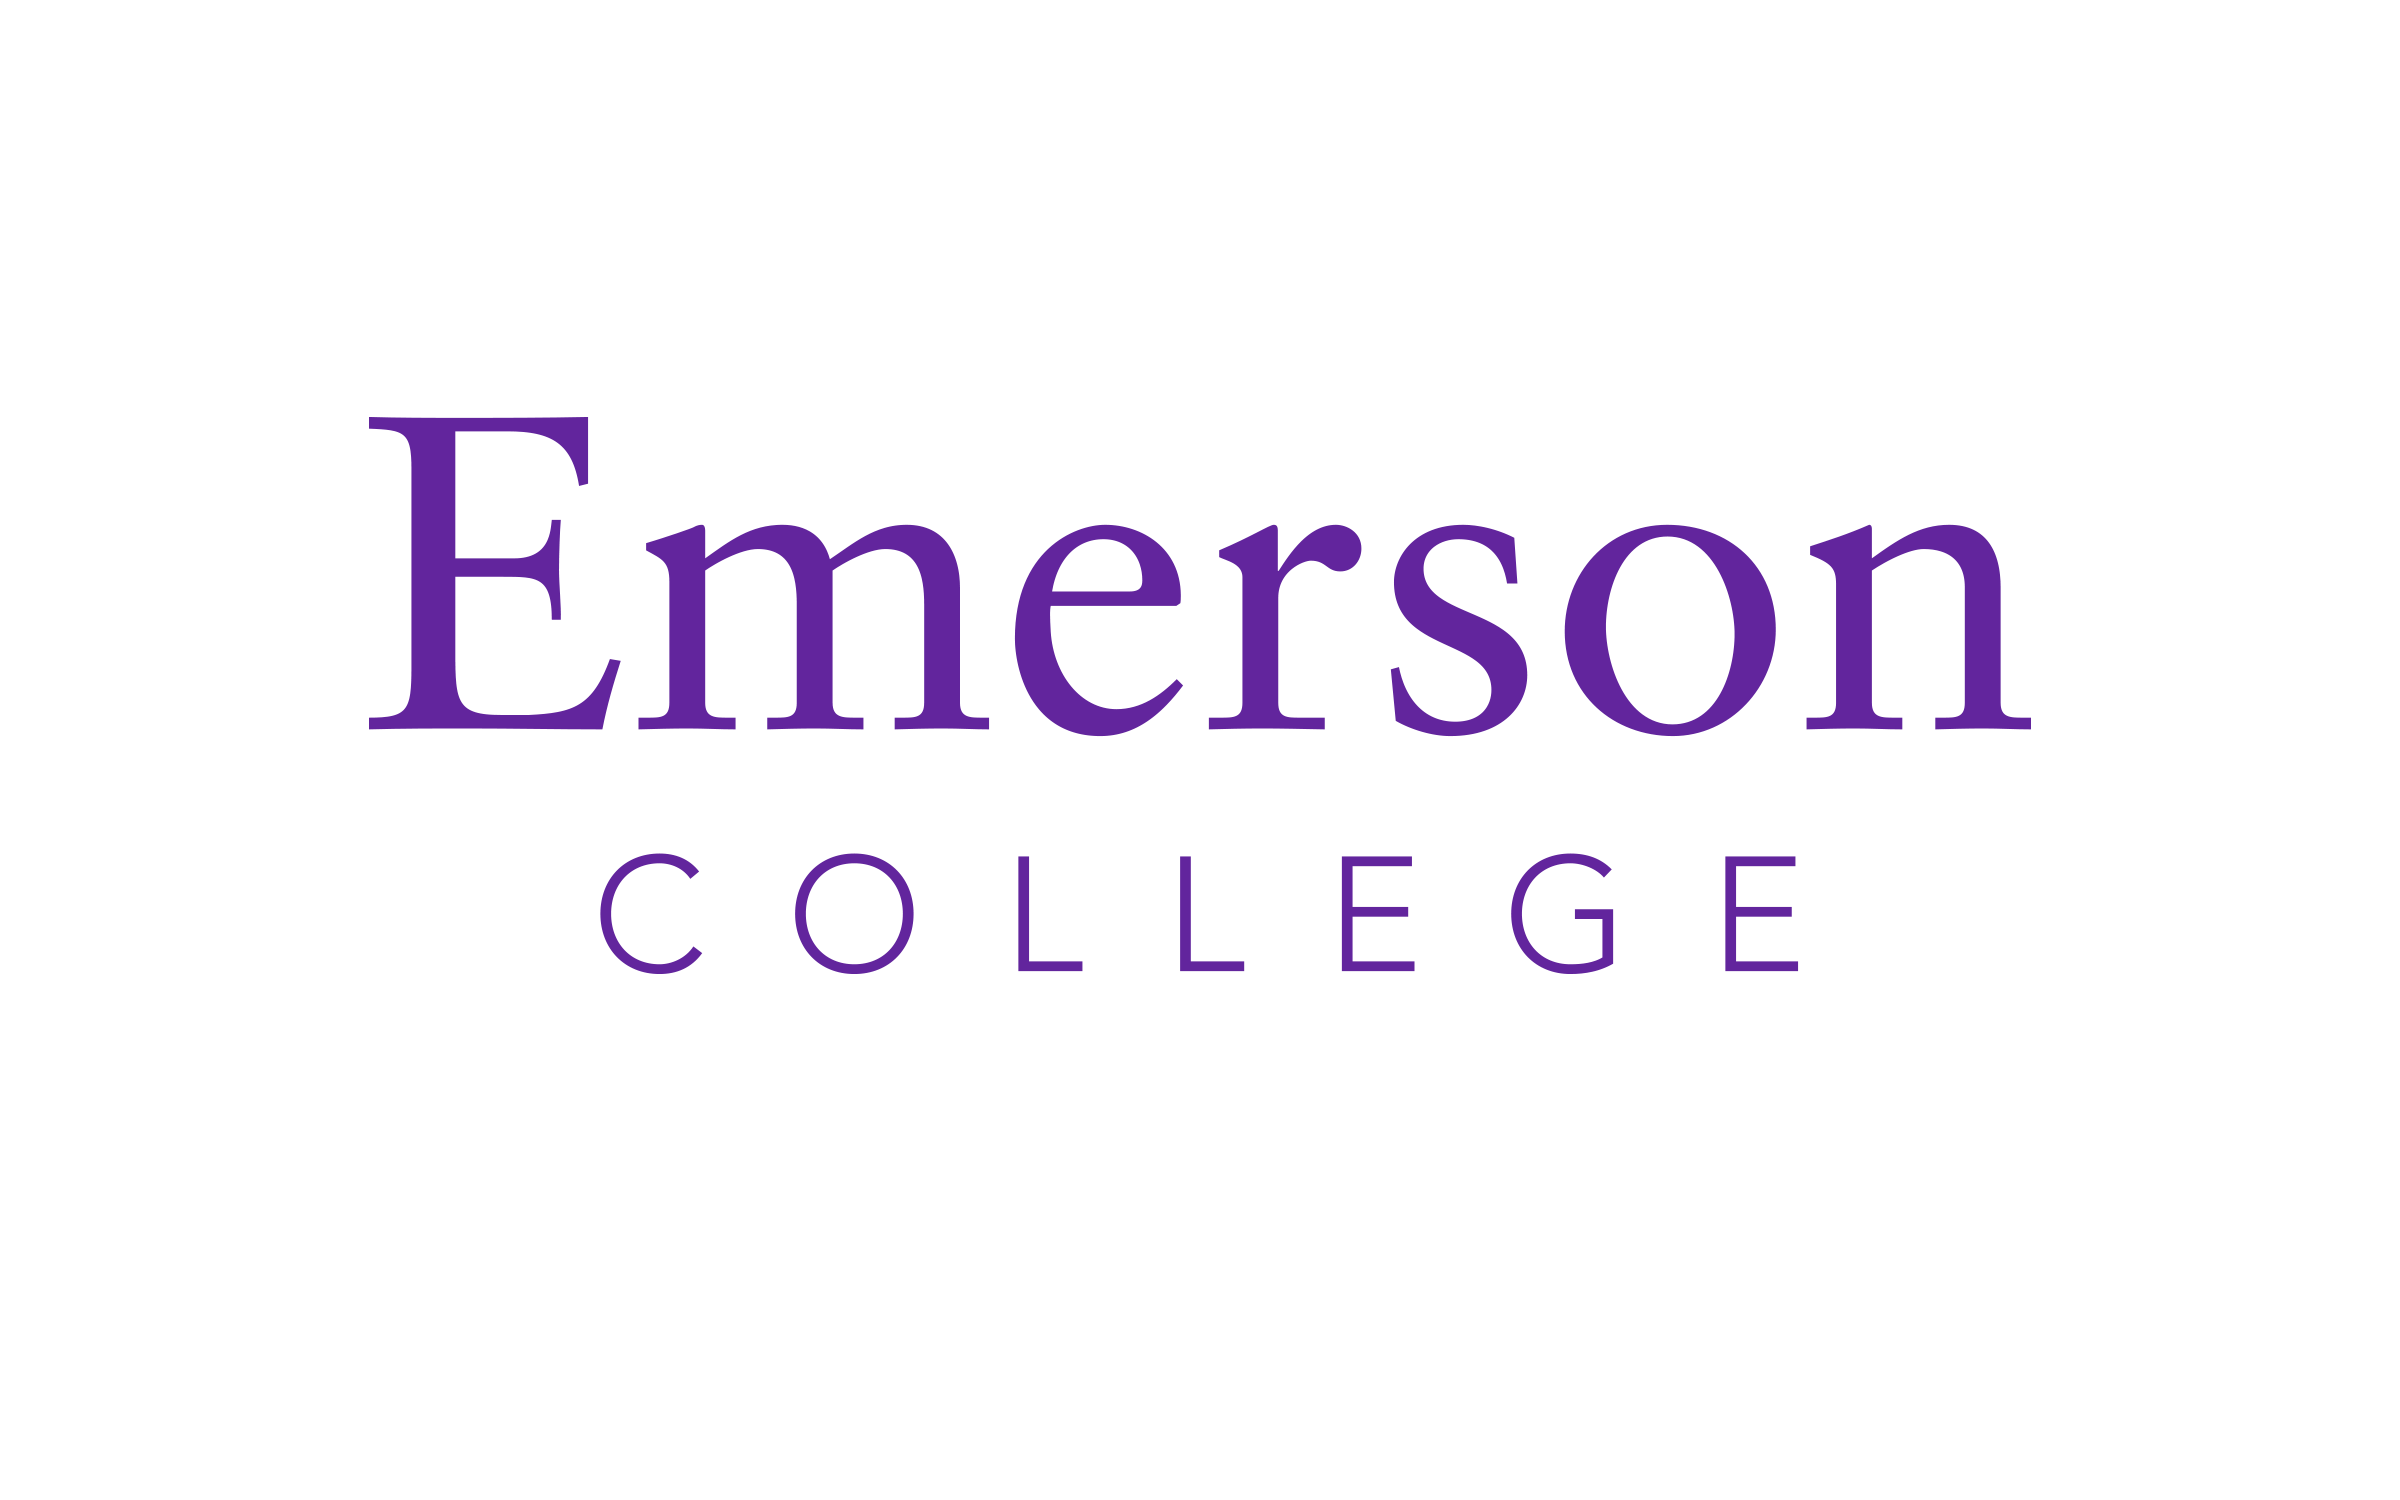 Emerson College logo where Jacob attended